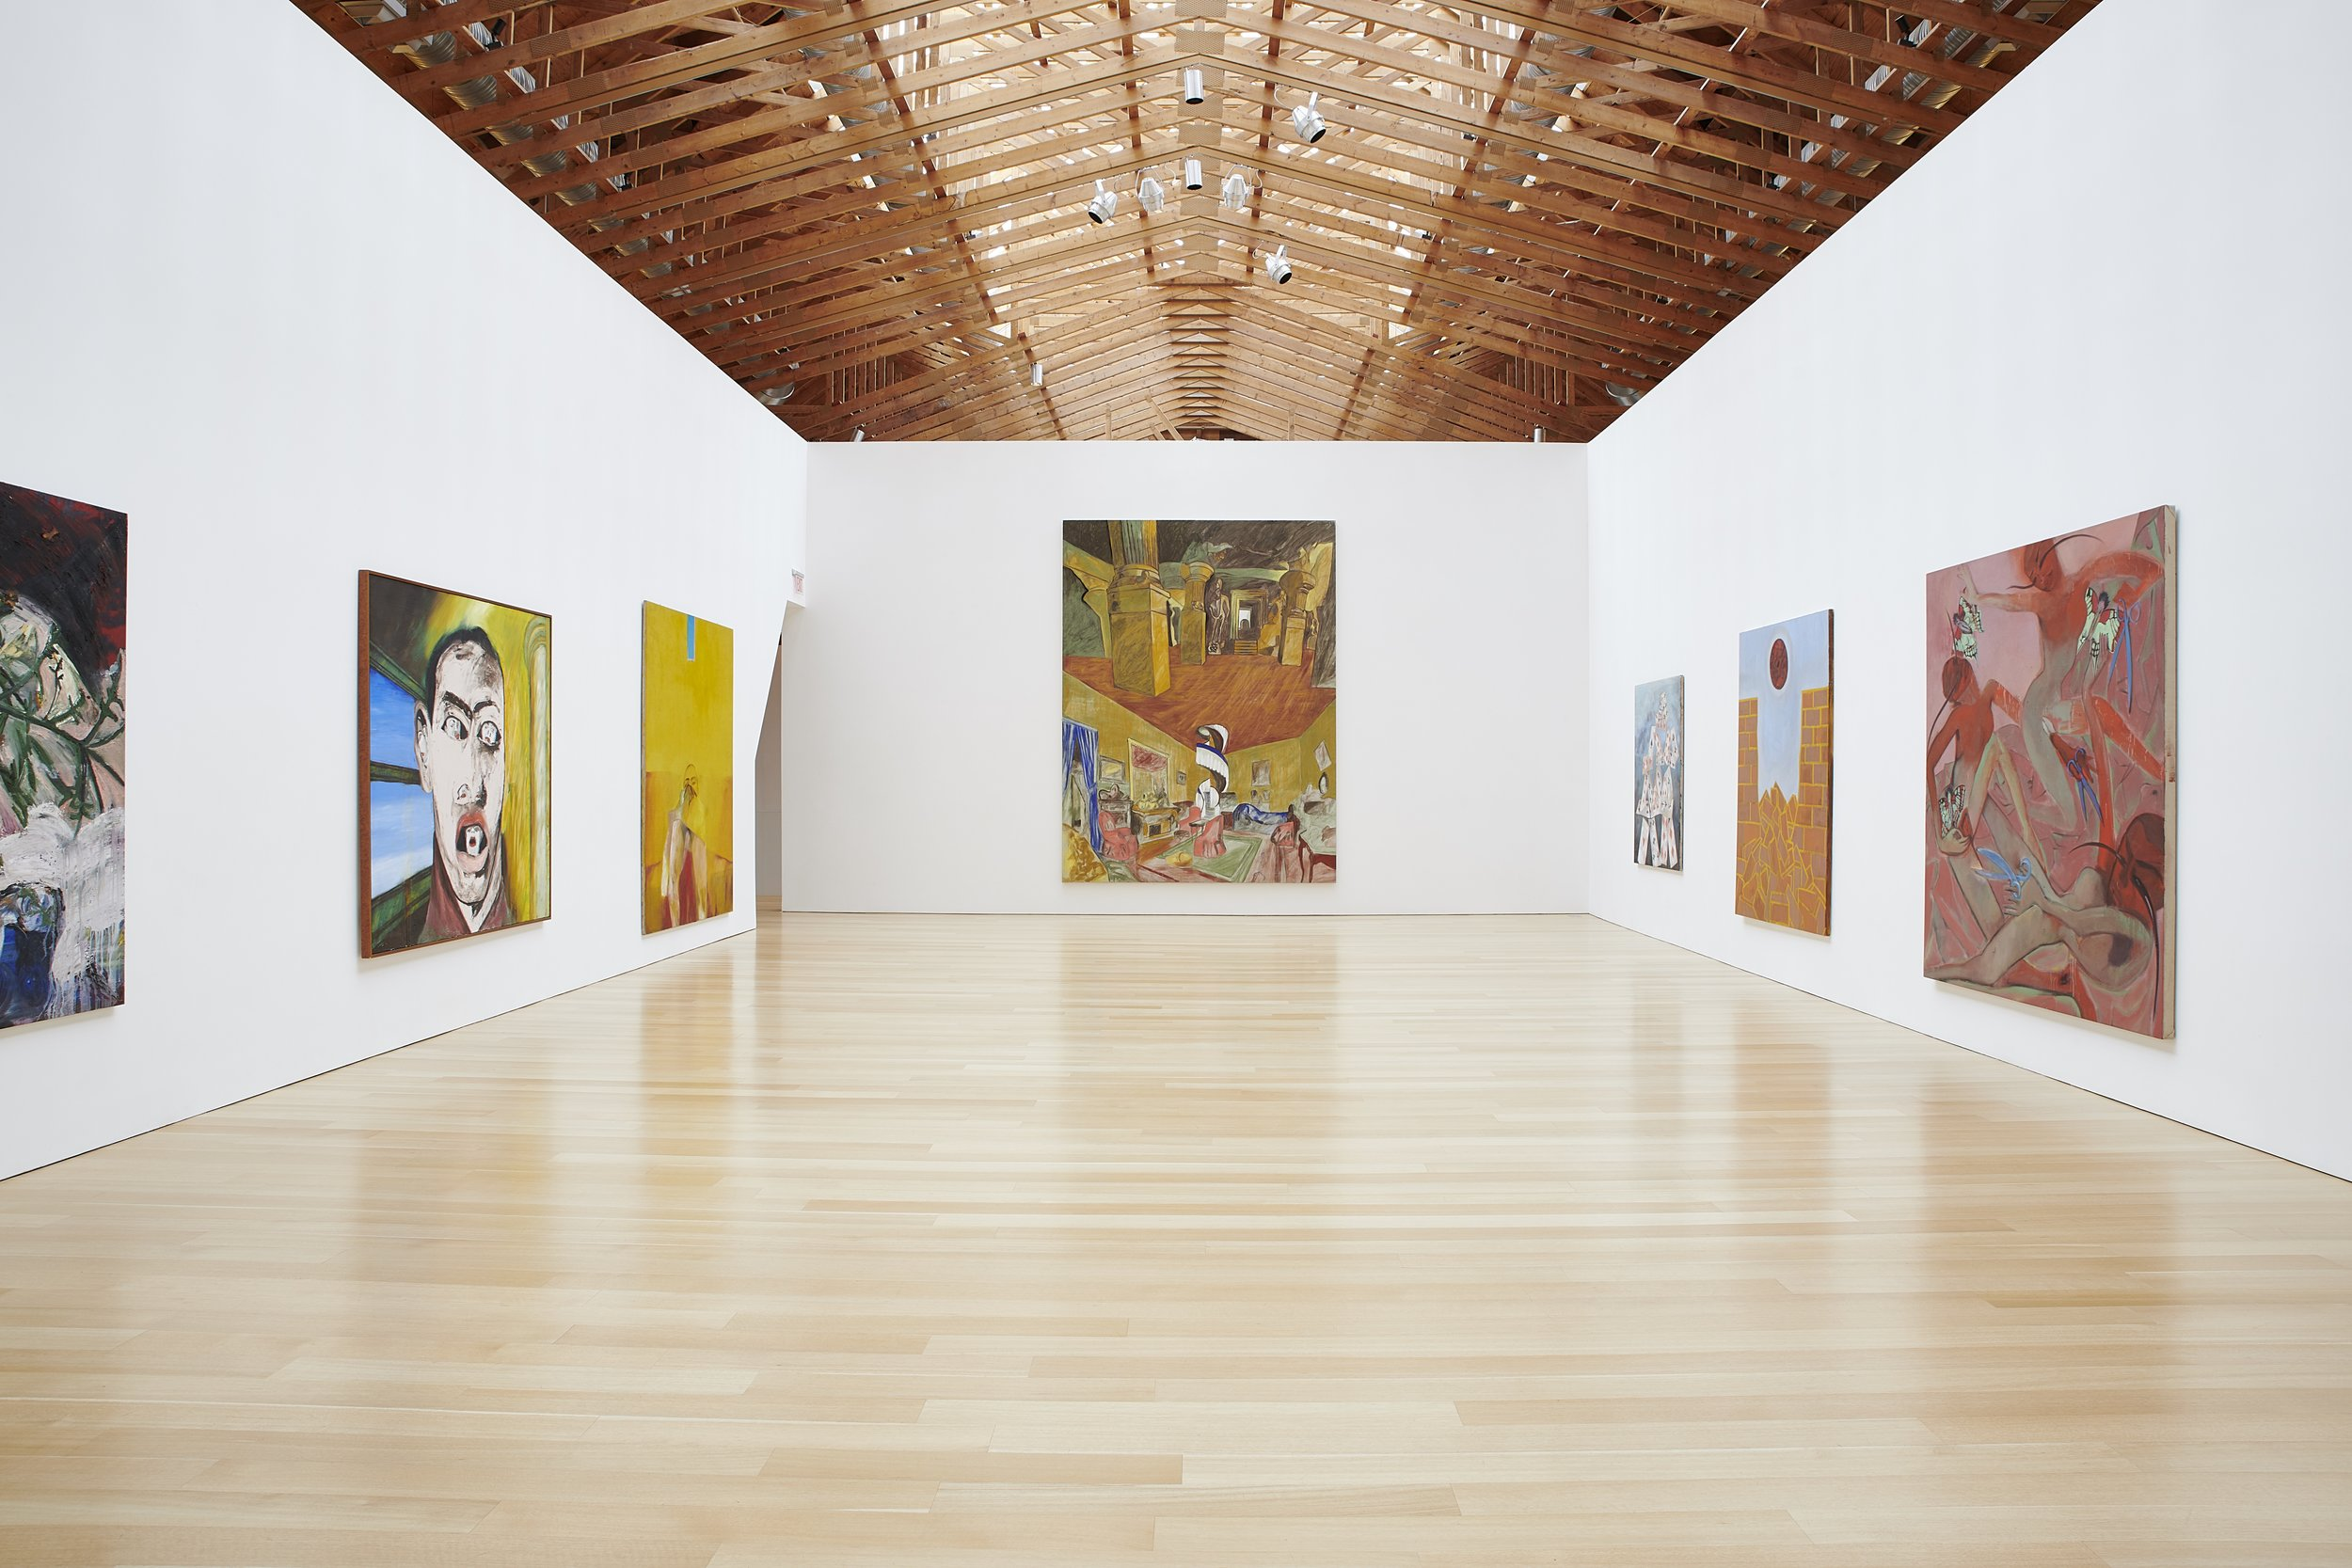 Installation of Clemente paintings at the Brant Foundation. Photograph by Laura Wilson, courtesy of the Brant Foundation.